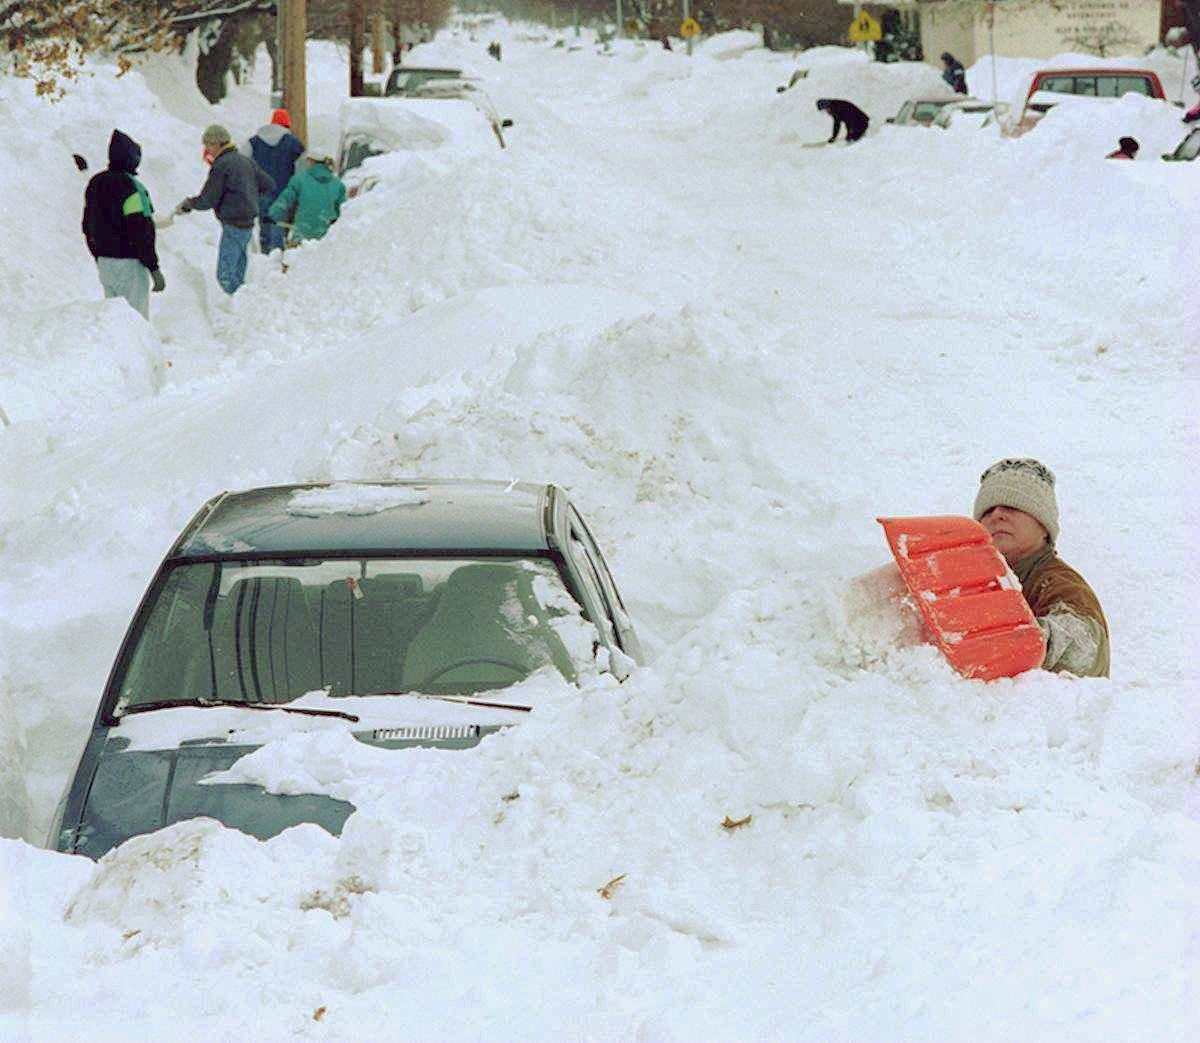 PICTURES: Relive the Blizzard of '96 that buried the ...